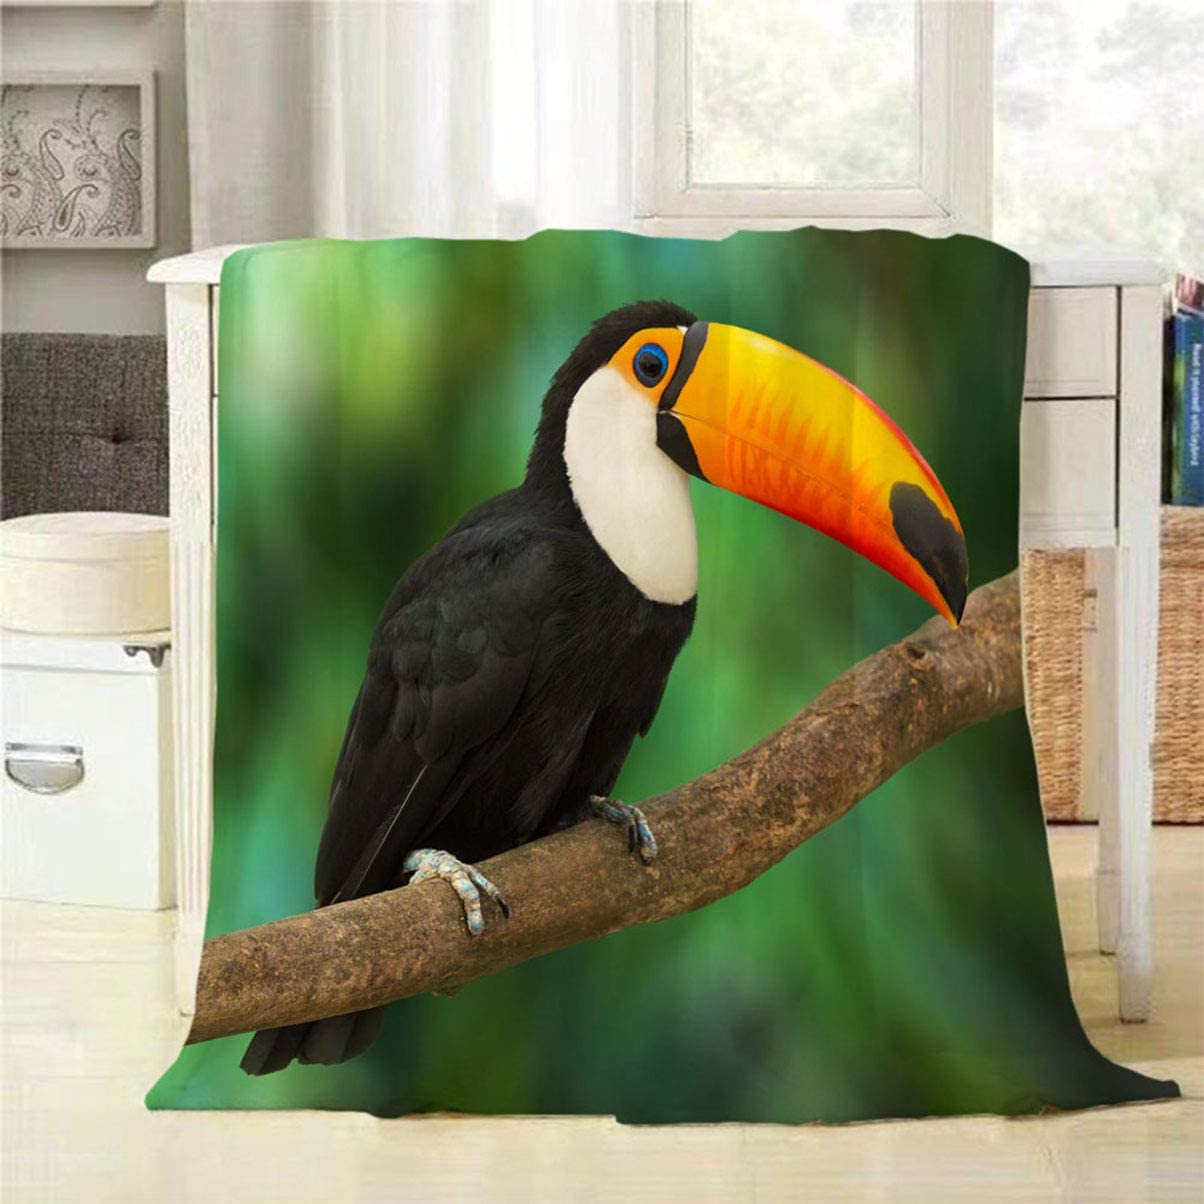 Mugod Black Toucan Throw Blanket Toucan Sitting on Tree Branch in Tropical Forest or Jungle Decorative Soft Warm Cozy Flannel Plush Throws Blankets for Baby Toddler Dog Cat 30 X 40 Inch